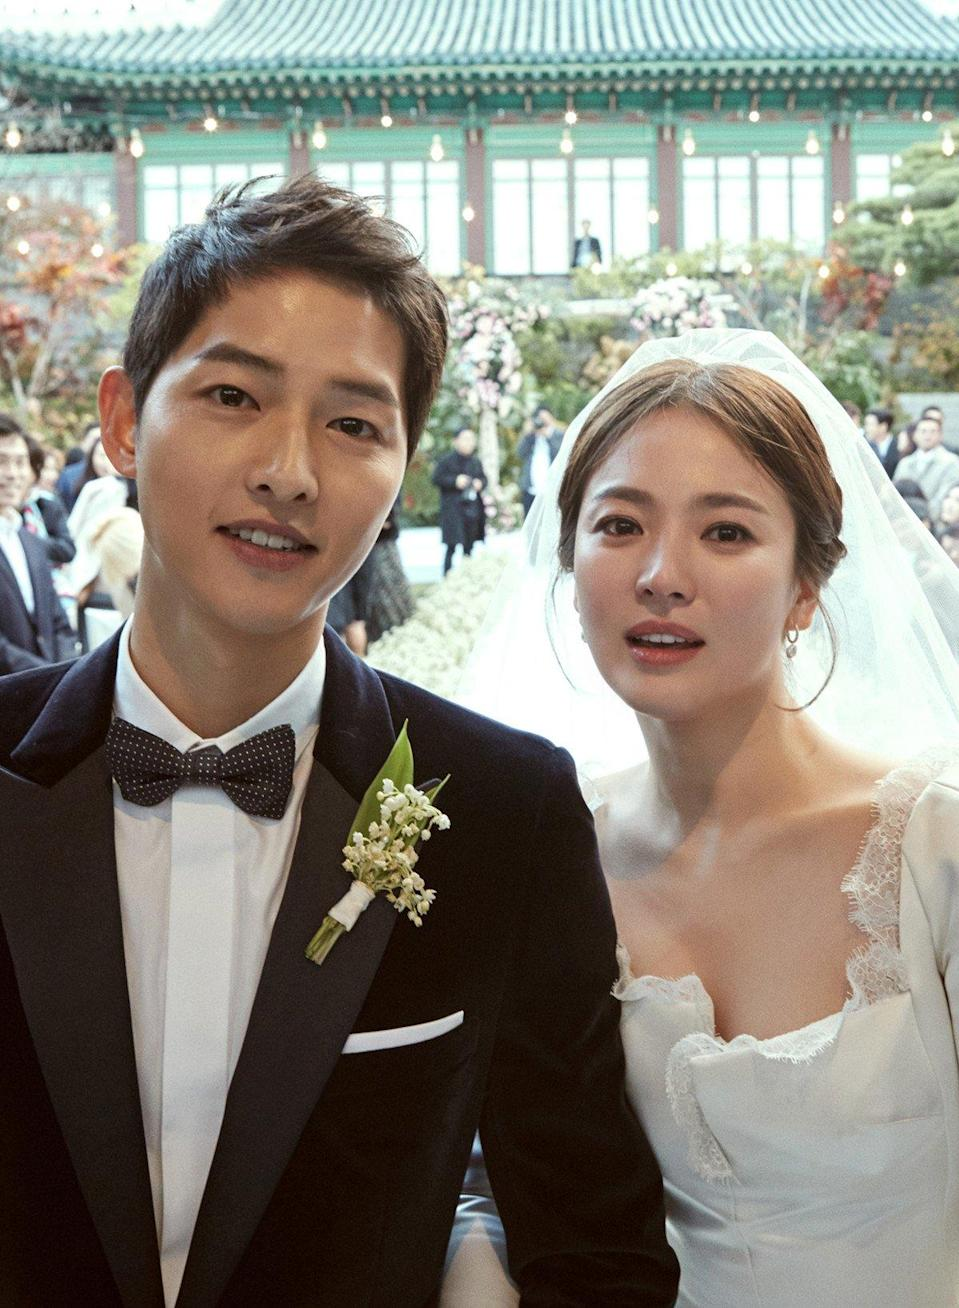 South Korean stars Song Joong-ki and Song Hye-kyo tied the knot. (Photo: Blossom Entertainment)